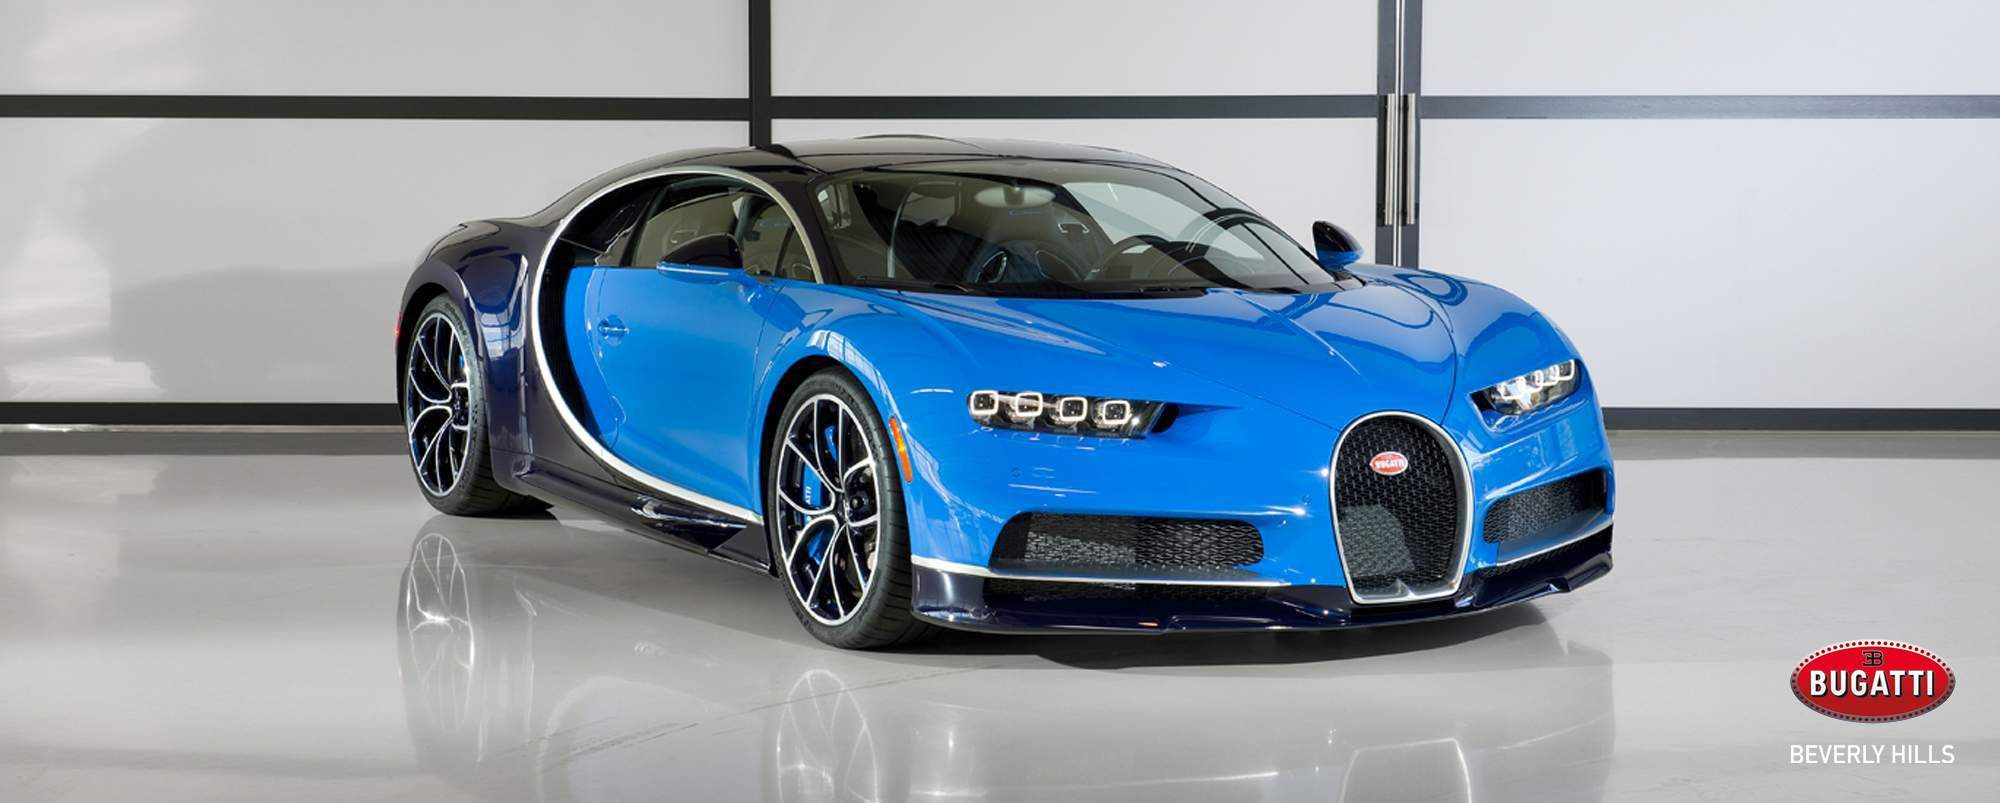 Aston Martin Offers >> 2018 Bugatti Chiron | Bugatti Beverly Hills | An O'Gara Coach Brand | Los Angeles, California